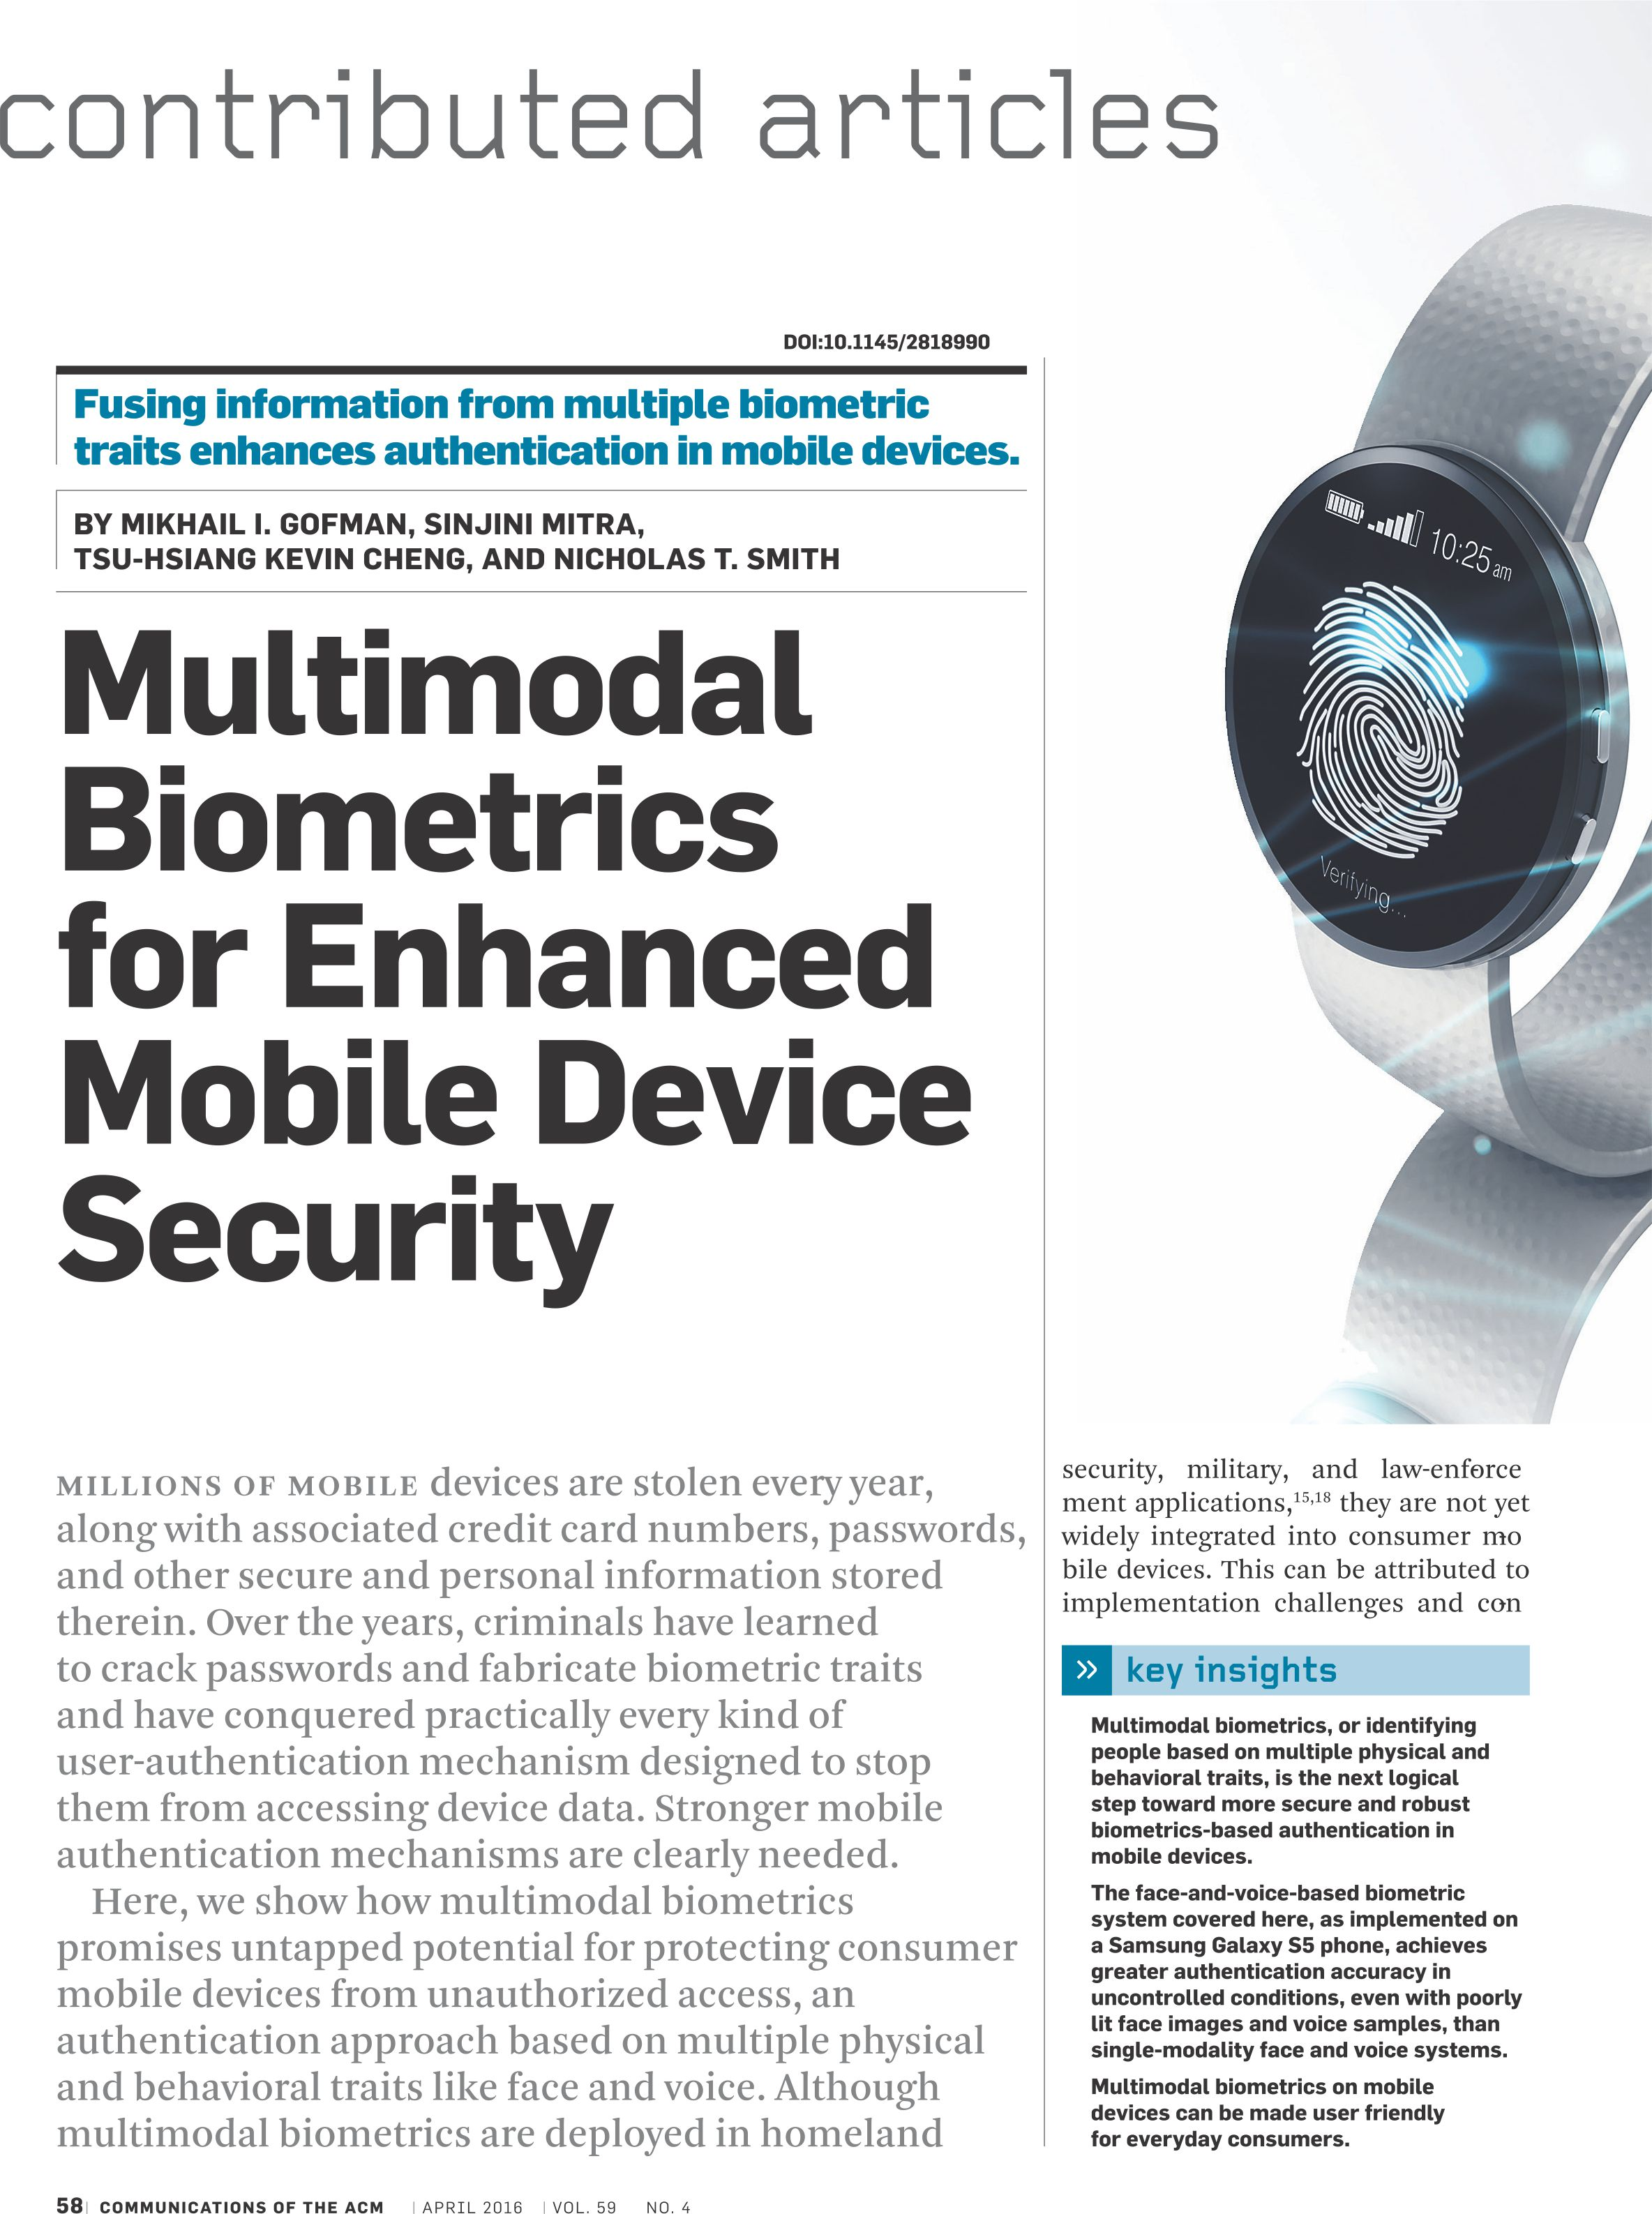 biometric security research paper - the world of biometric security biometrics is methods of recognizing a person based on a physiological or behavioral characteristic some of the features measured in biometrics identification that i will include in this paper are: fingerprints, retina, face, signature, and voice scans.